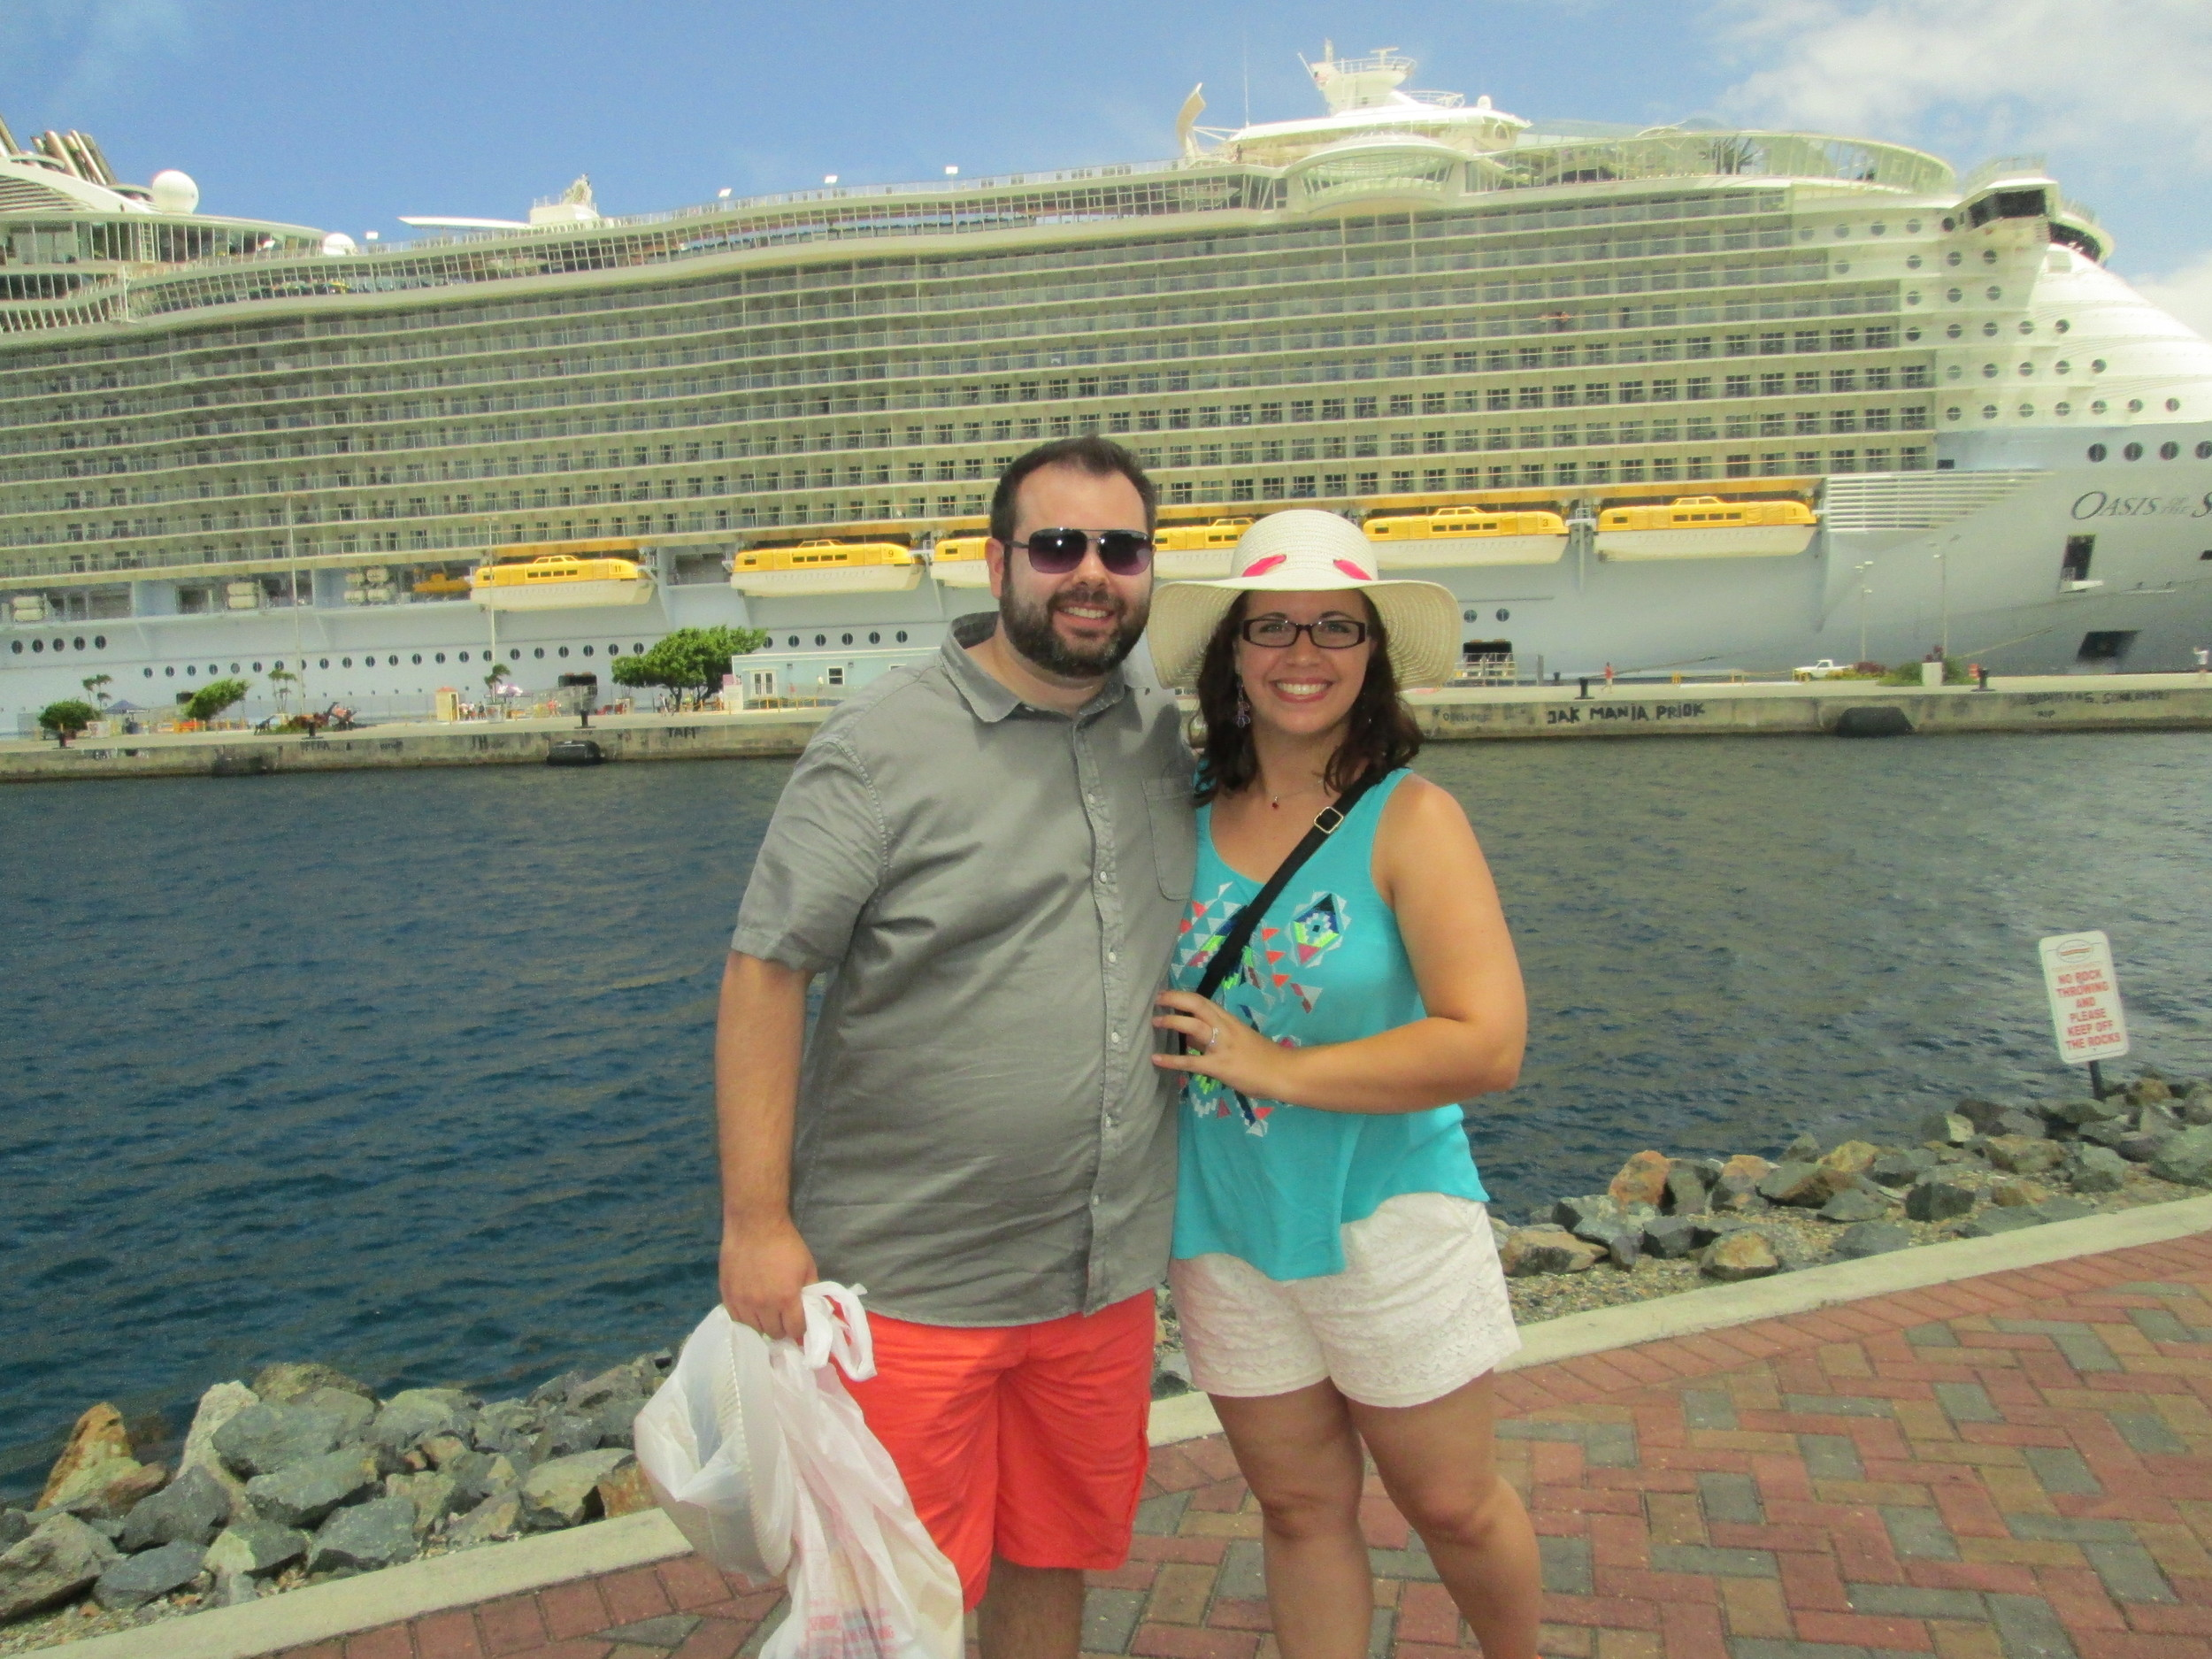 After a day in St. Thomas, we headed back to the ship early to take advantage of it's emptiness!